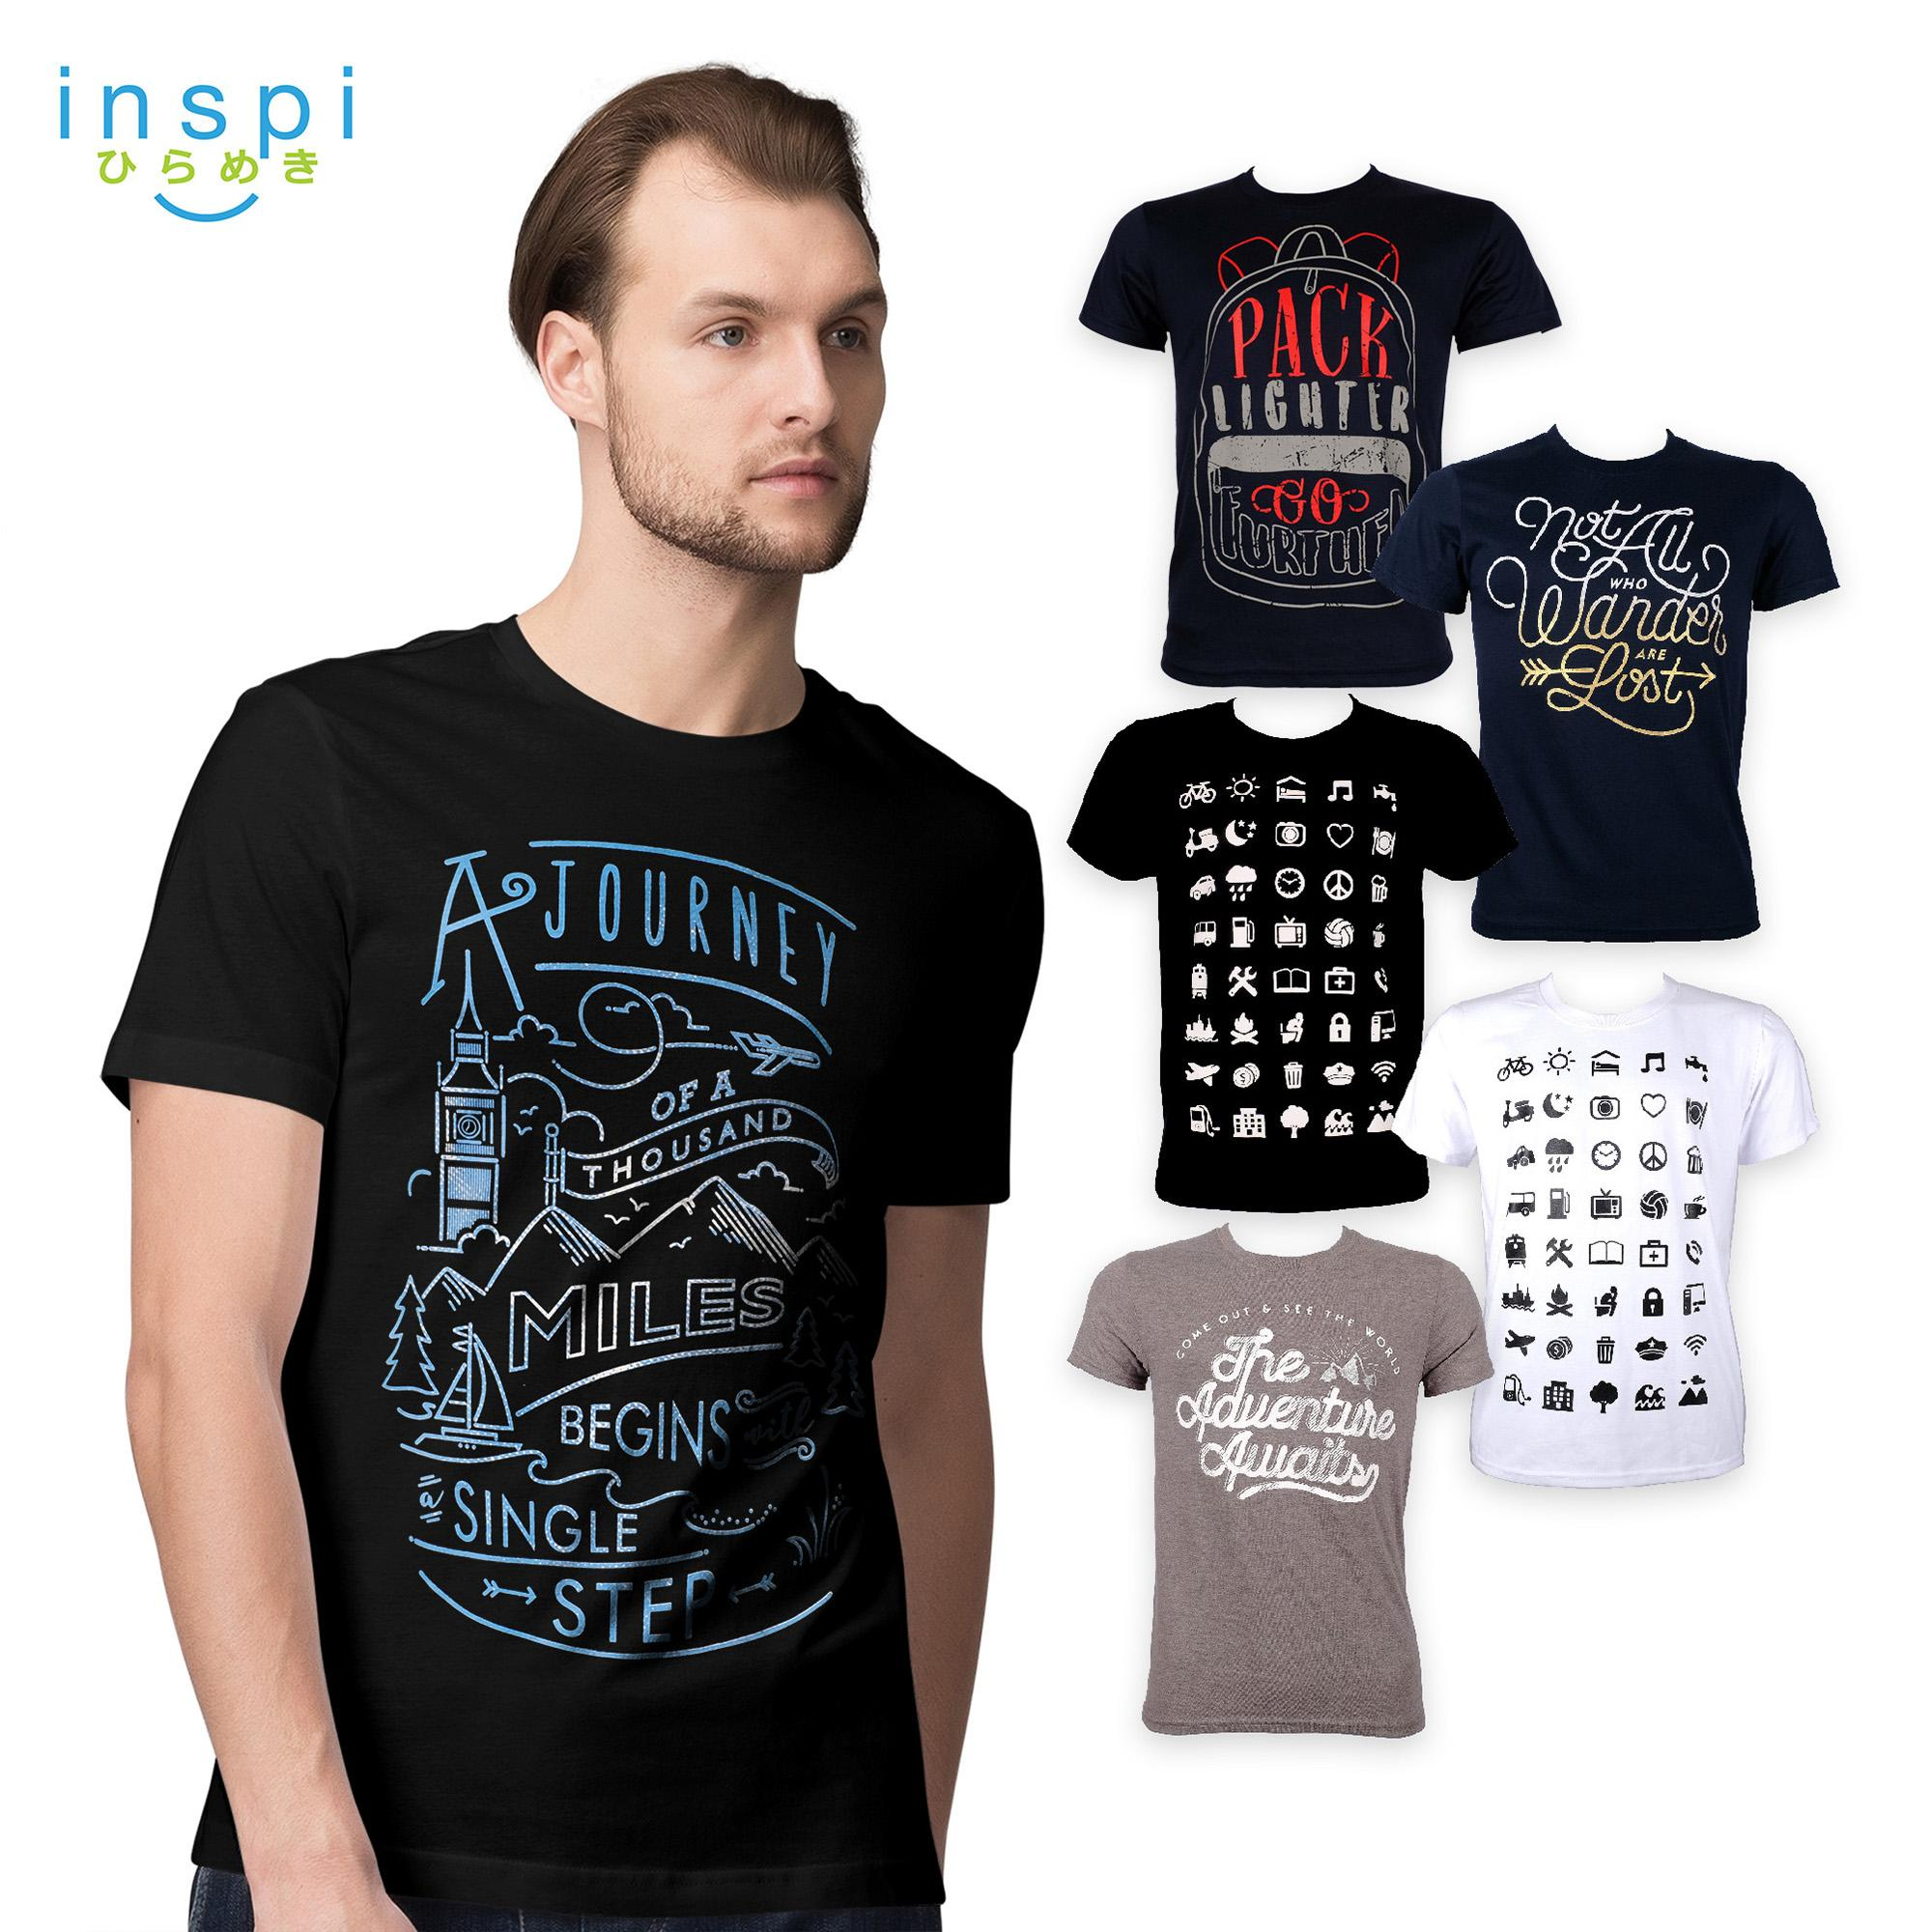 80a5ba1e7180 INSPI Tees Travel Collection tshirt printed graphic tee Mens t shirt shirts  for men tshirts sale